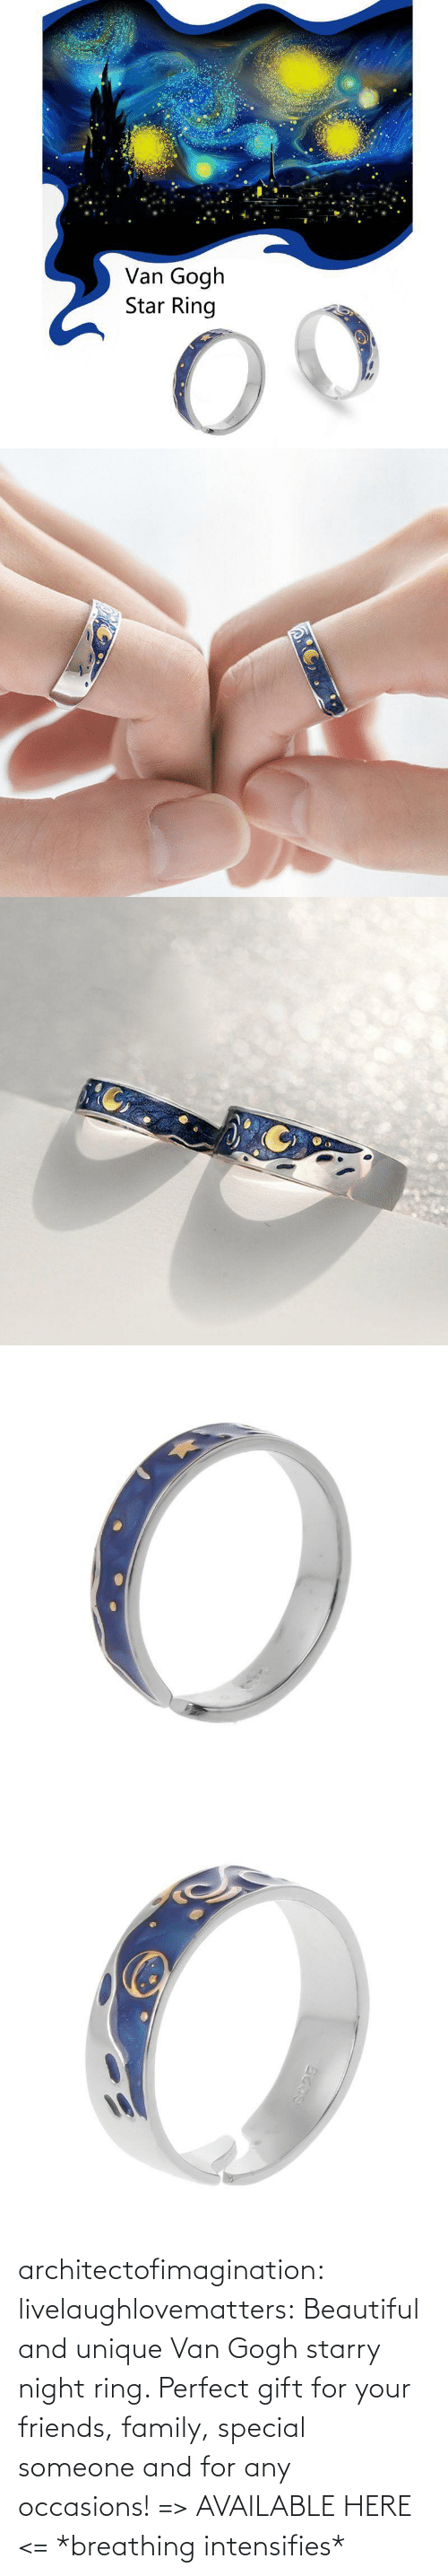 van: architectofimagination:  livelaughlovematters: Beautiful and unique Van Gogh starry night ring. Perfect gift for your friends, family, special someone and for any occasions! => AVAILABLE HERE <=    *breathing intensifies*